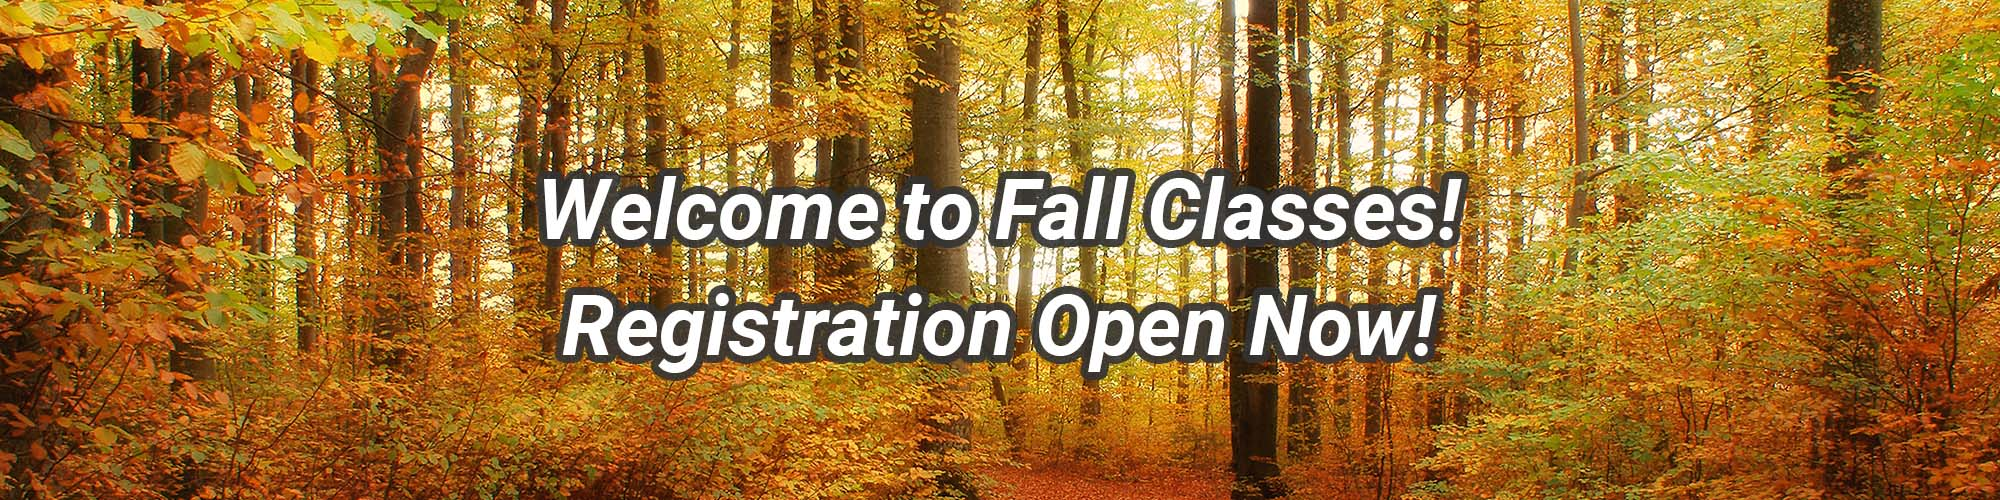 Welcome to Fall Classes! Registration Open Now!